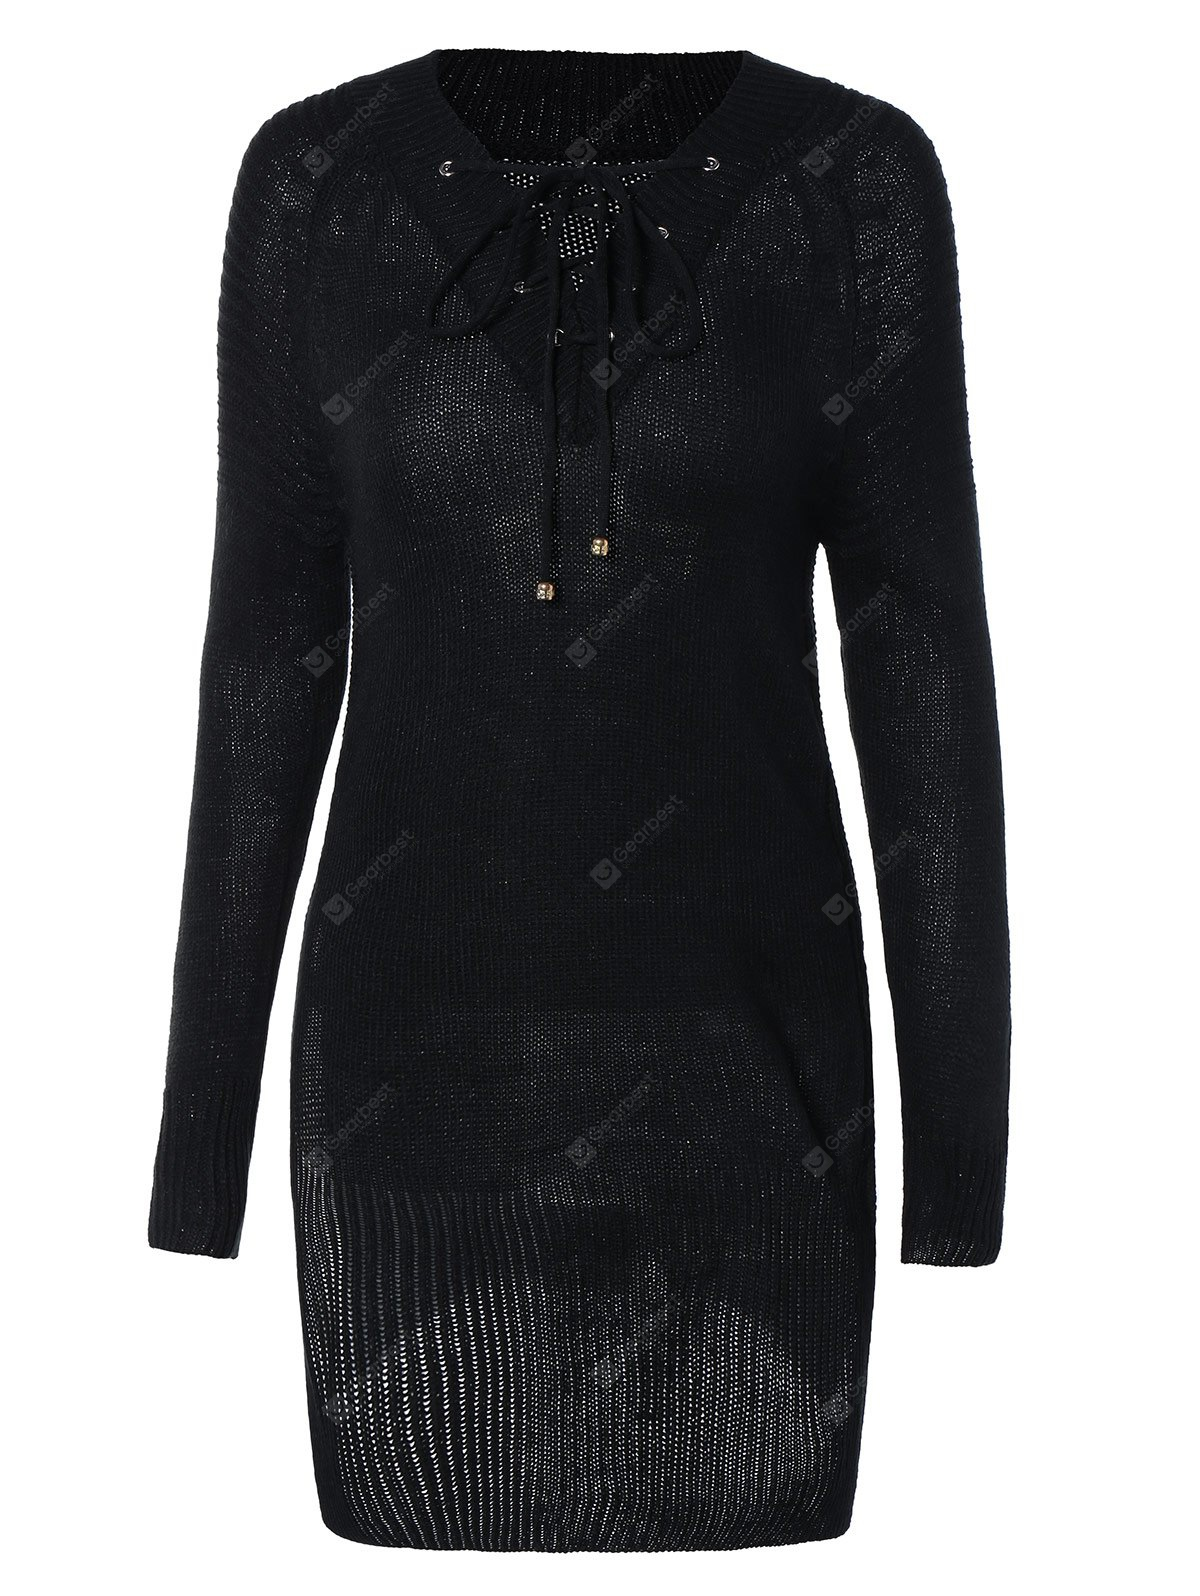 Women's Lace-Up Long Sleeve Black Furcal Sweater